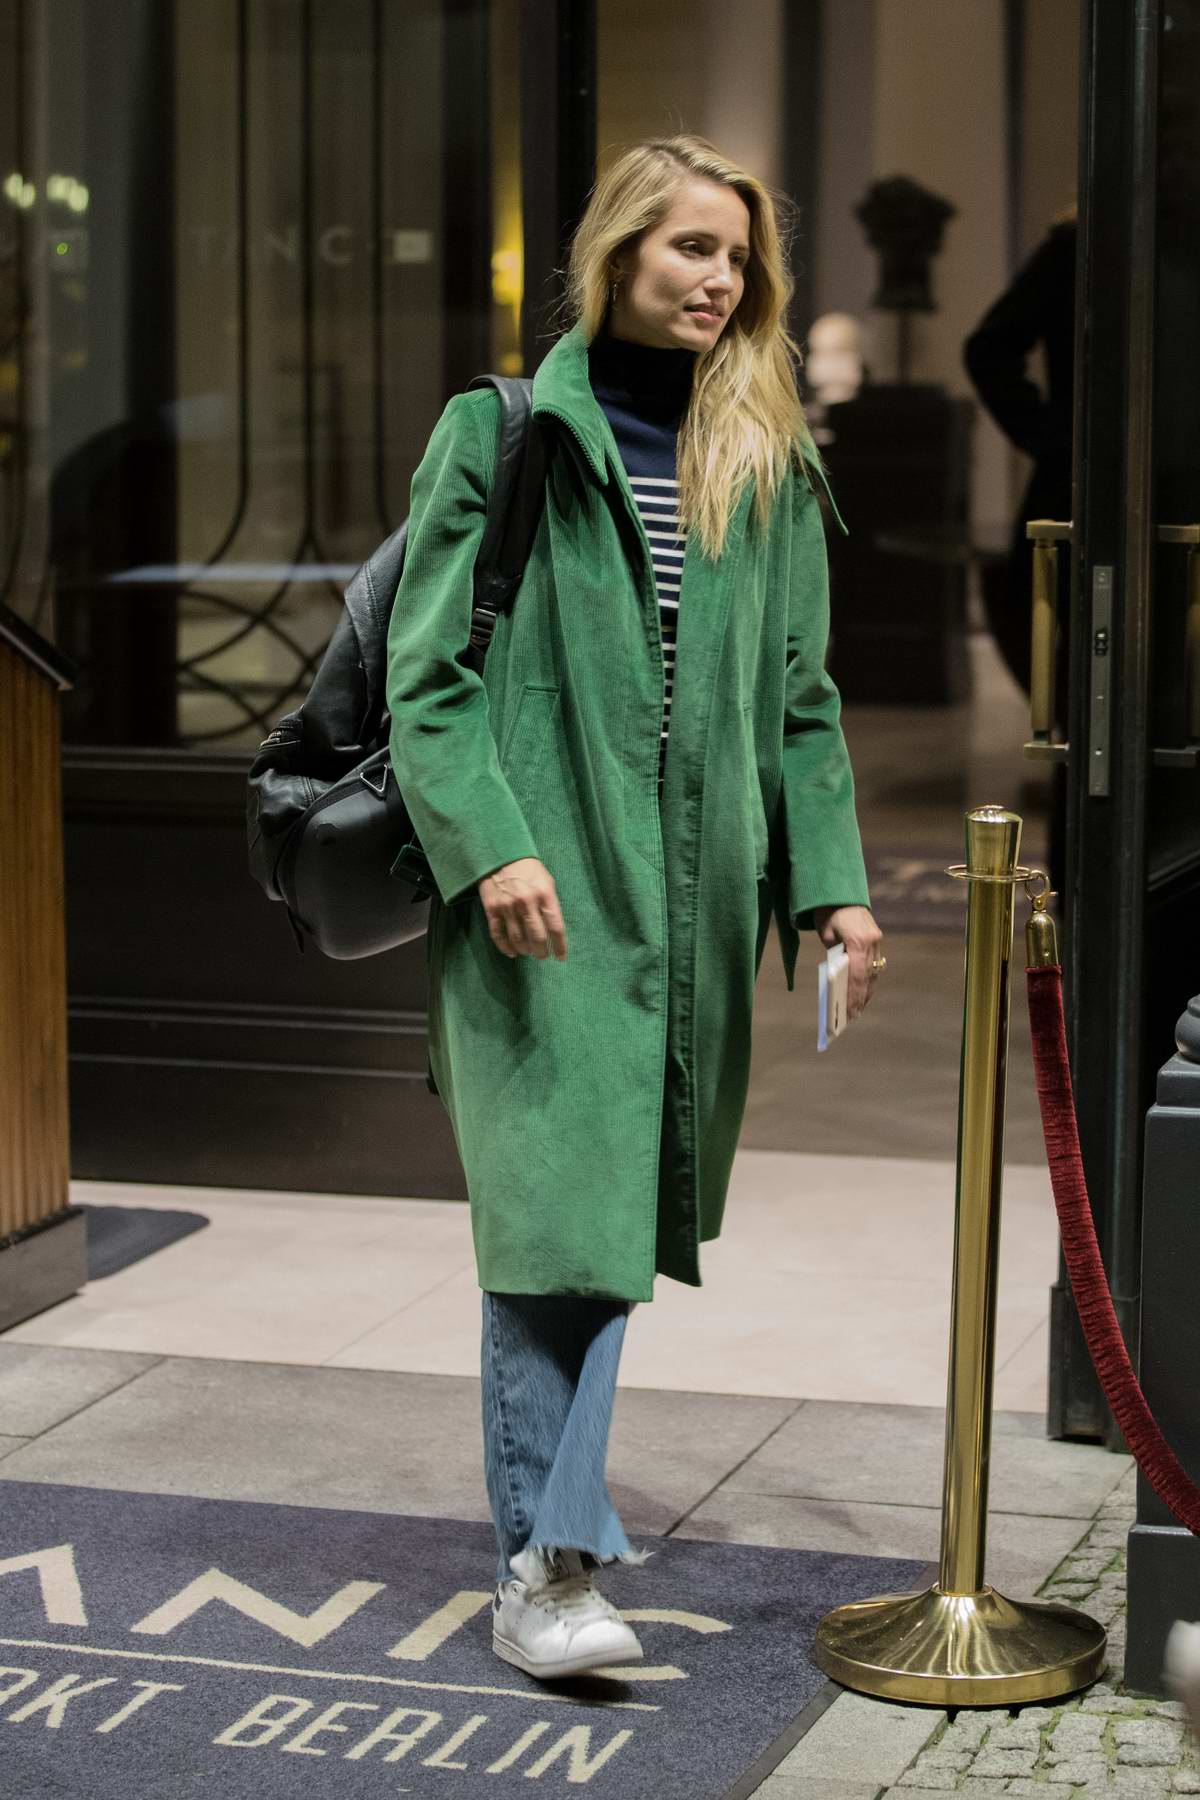 Dianna Agron seen in a green coat arriving at the Titanic Hotel after a long shooting day for 'Berlin I Love You' in Berlin, Germany